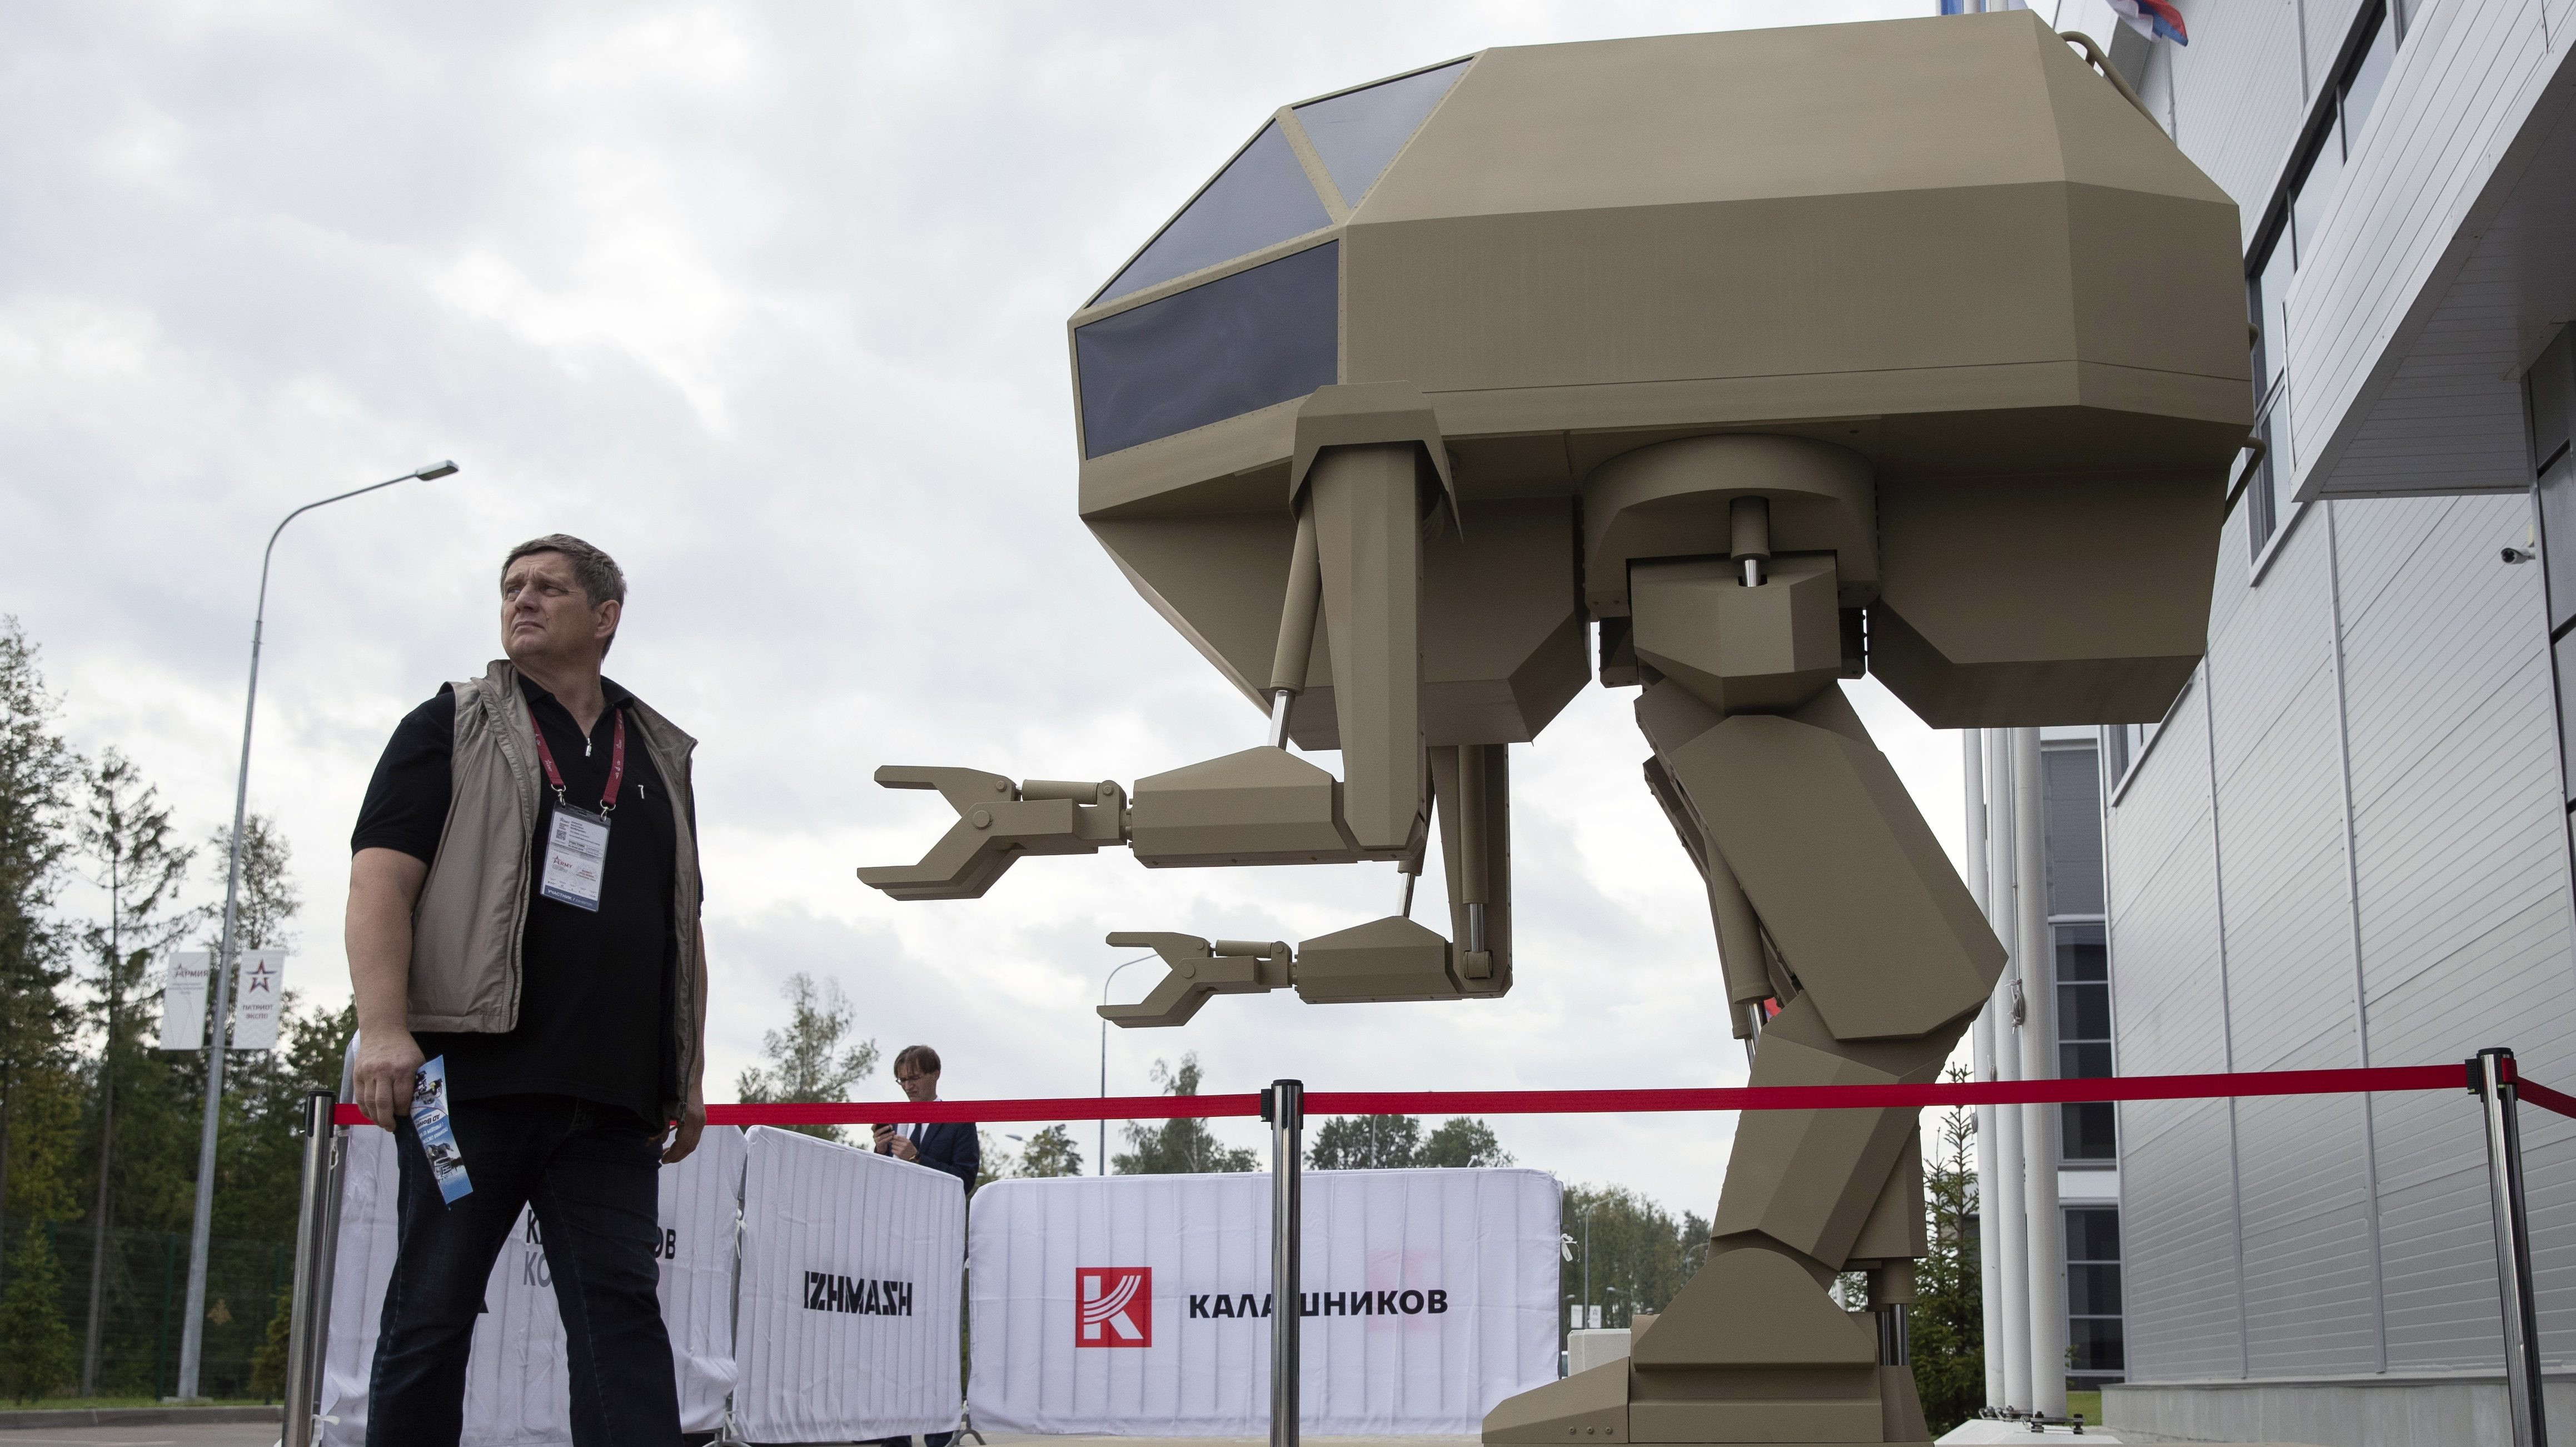 Killer robots must be stopped, says Pax